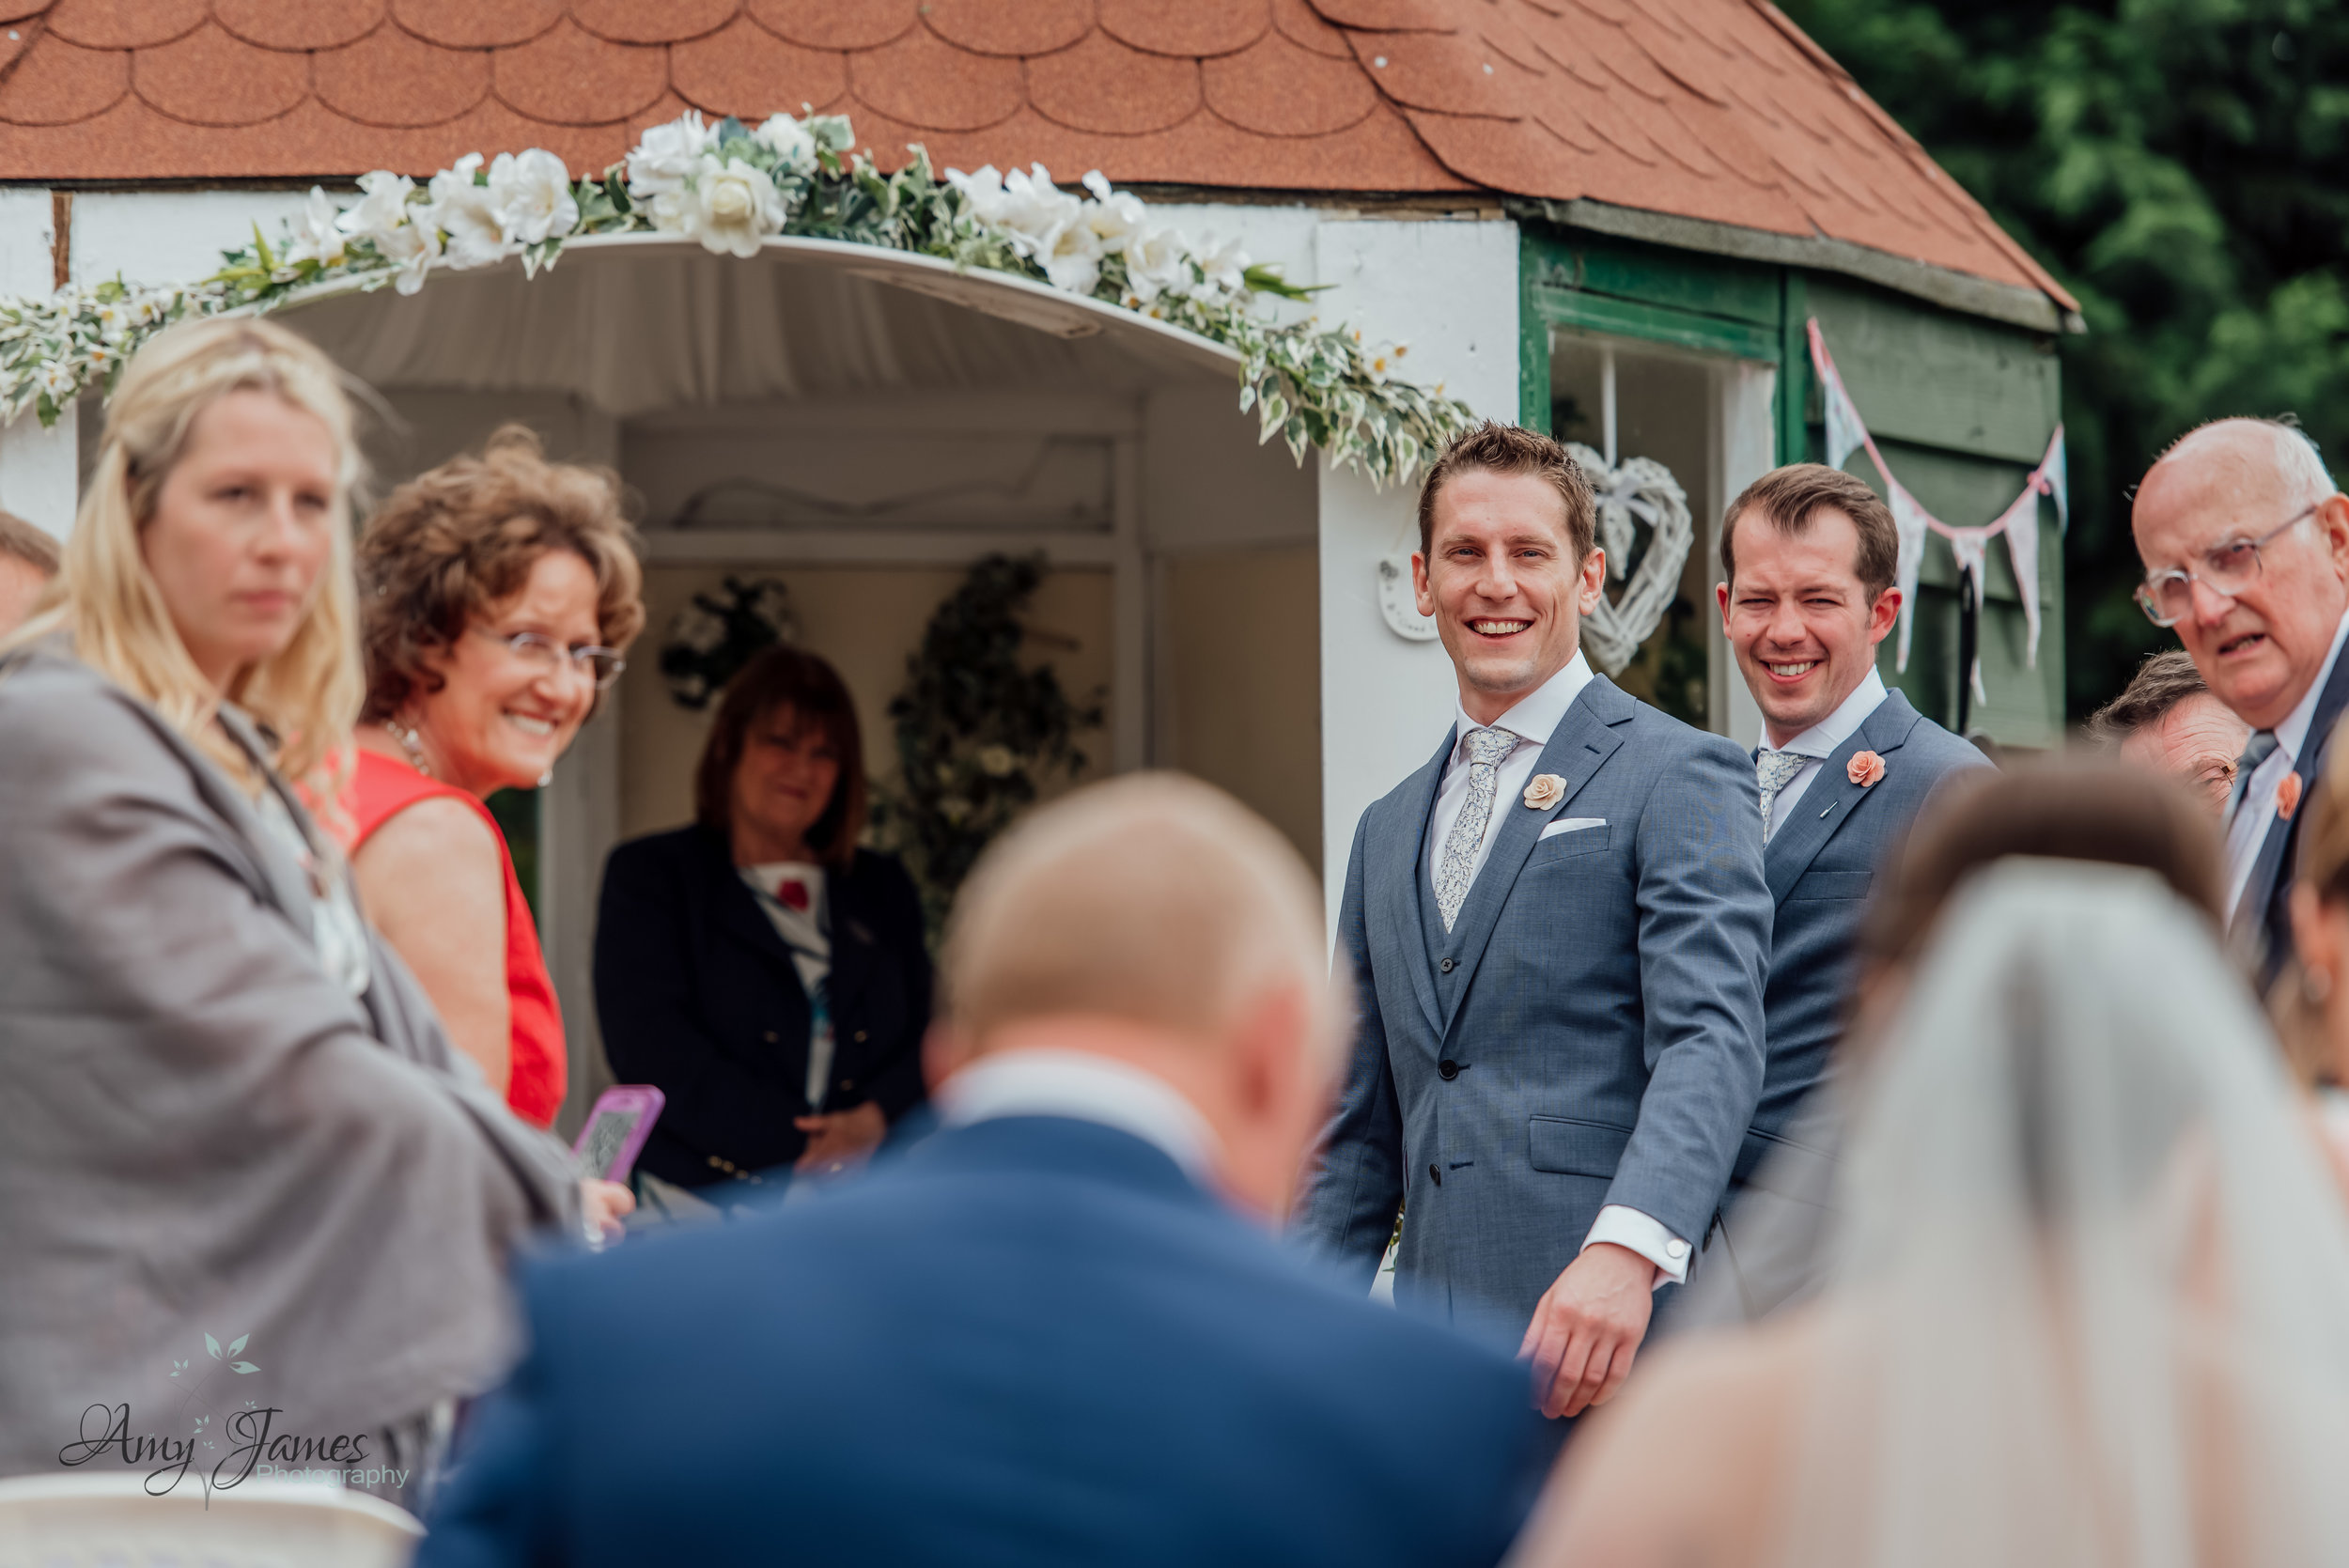 Outdoor wedding ceremony at Taplins Place Hampshire - Groom first look - Amy James photography